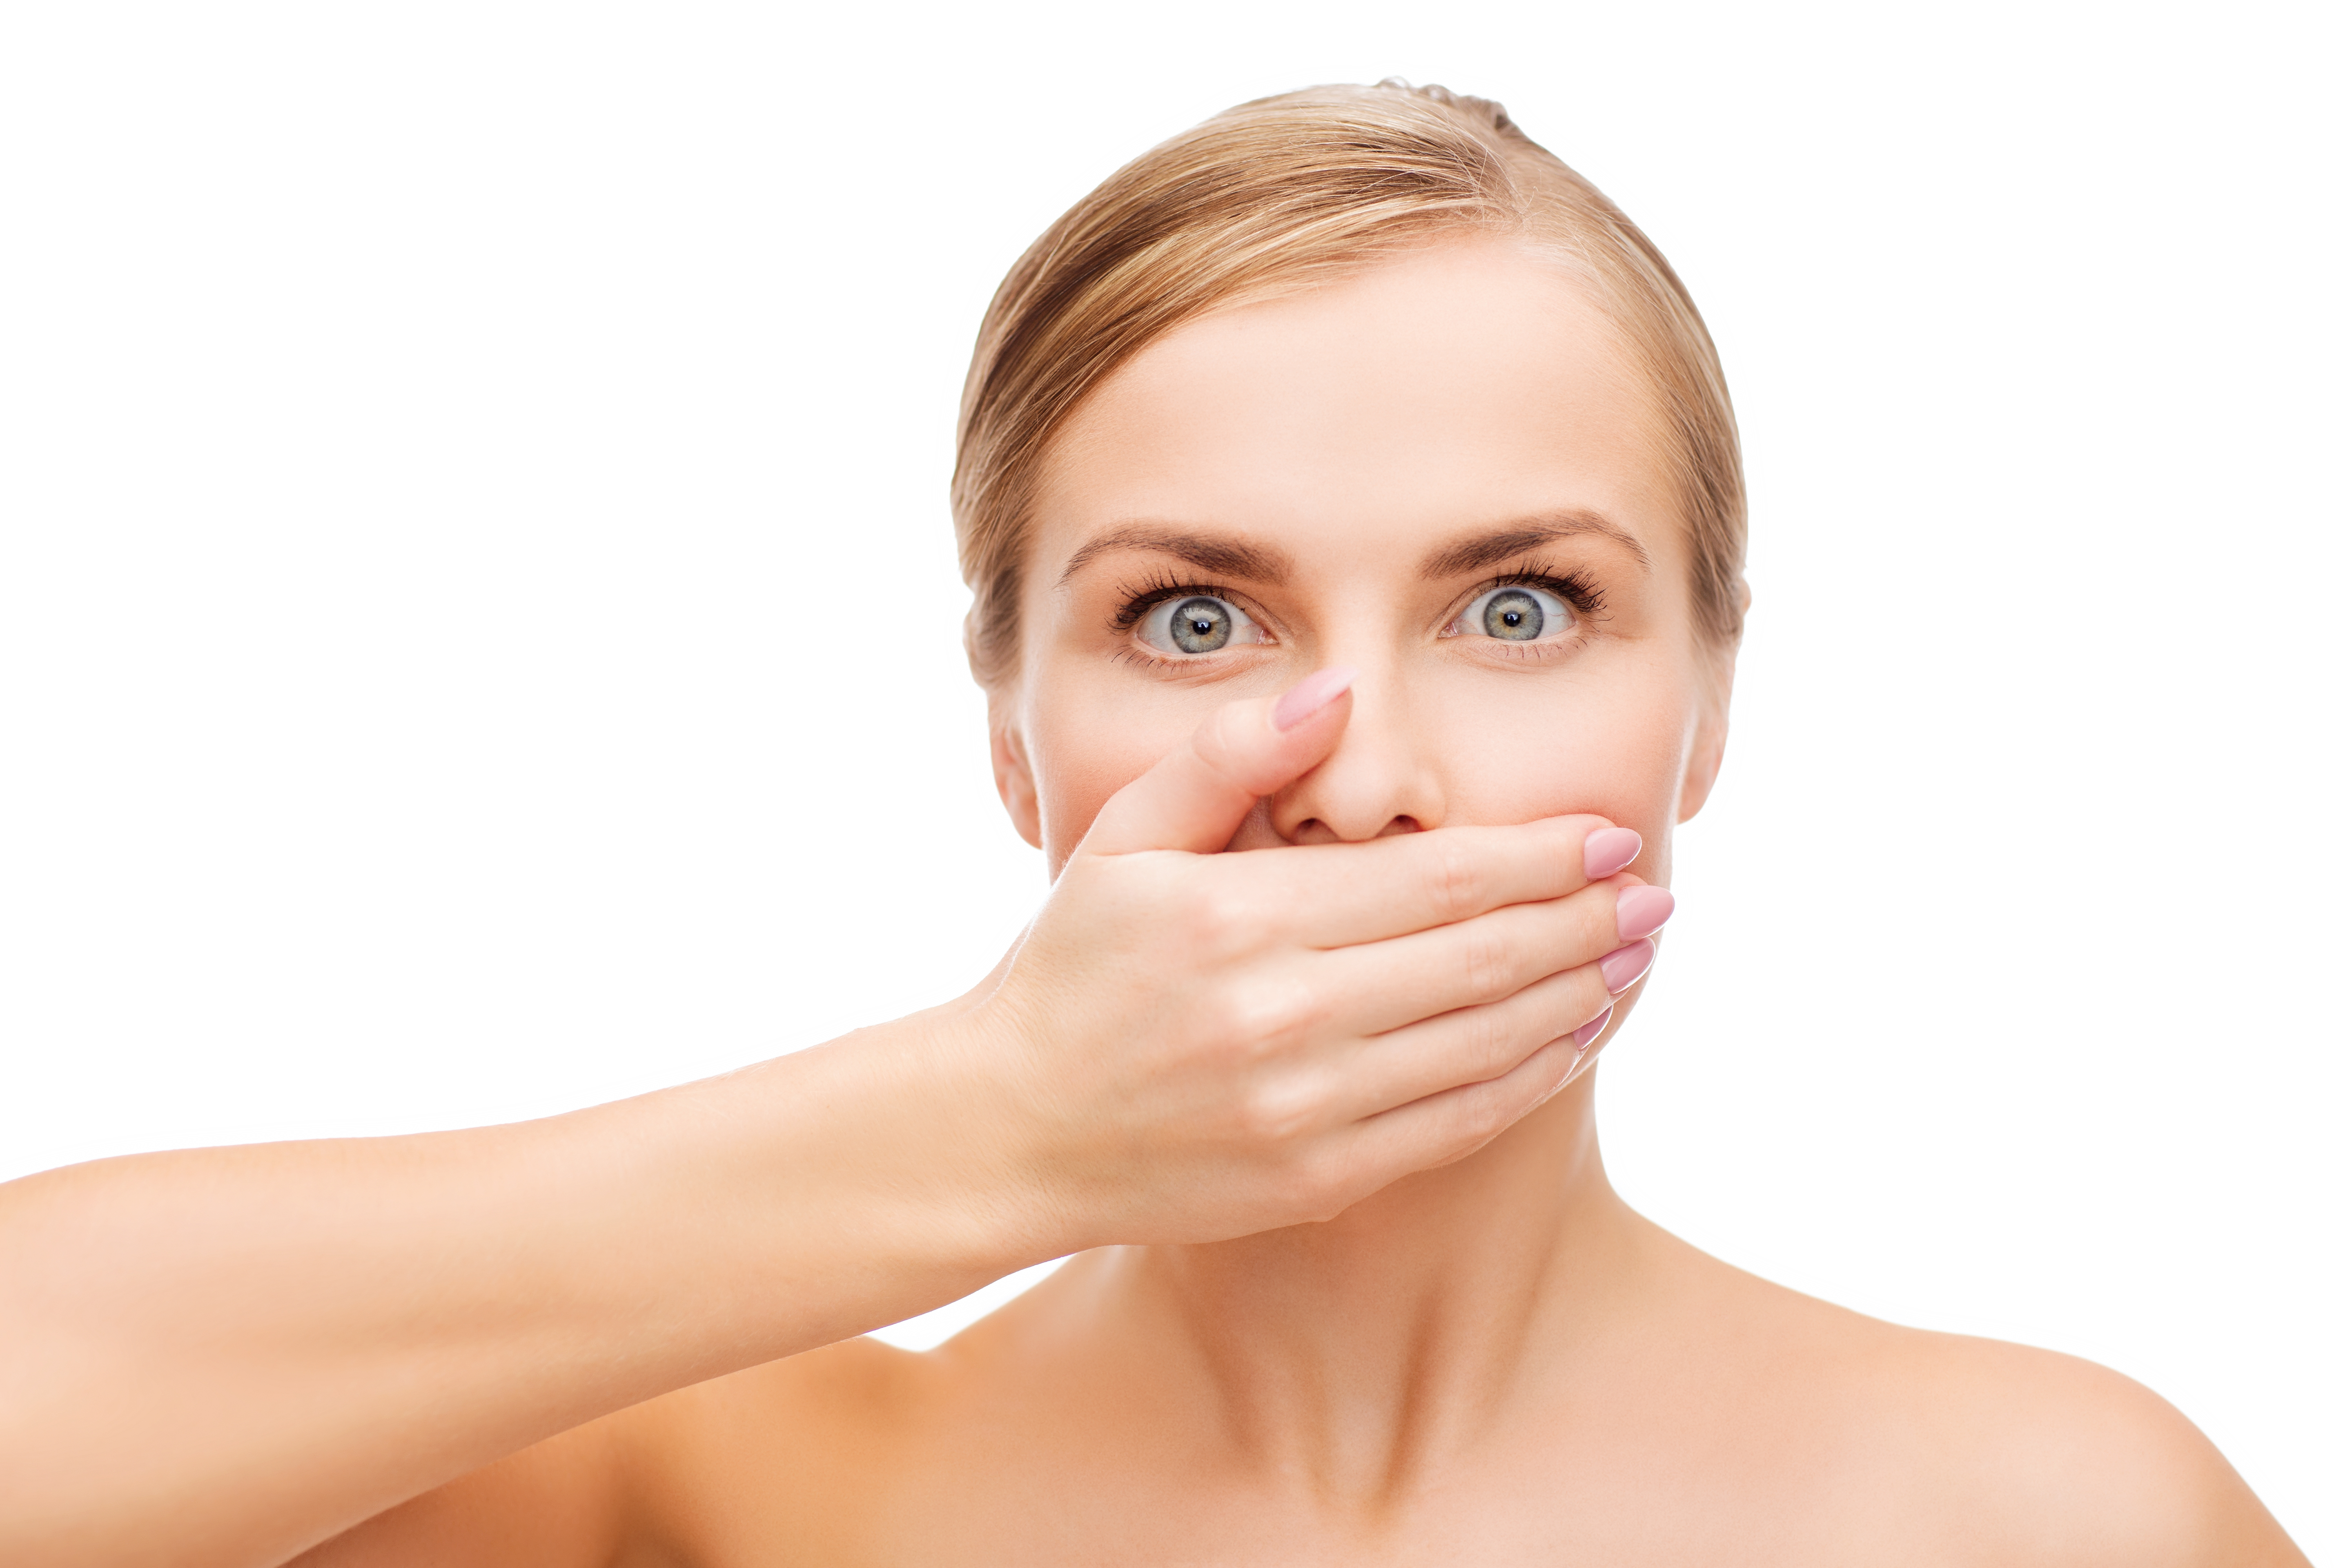 Tips to Reducing Bad Breath